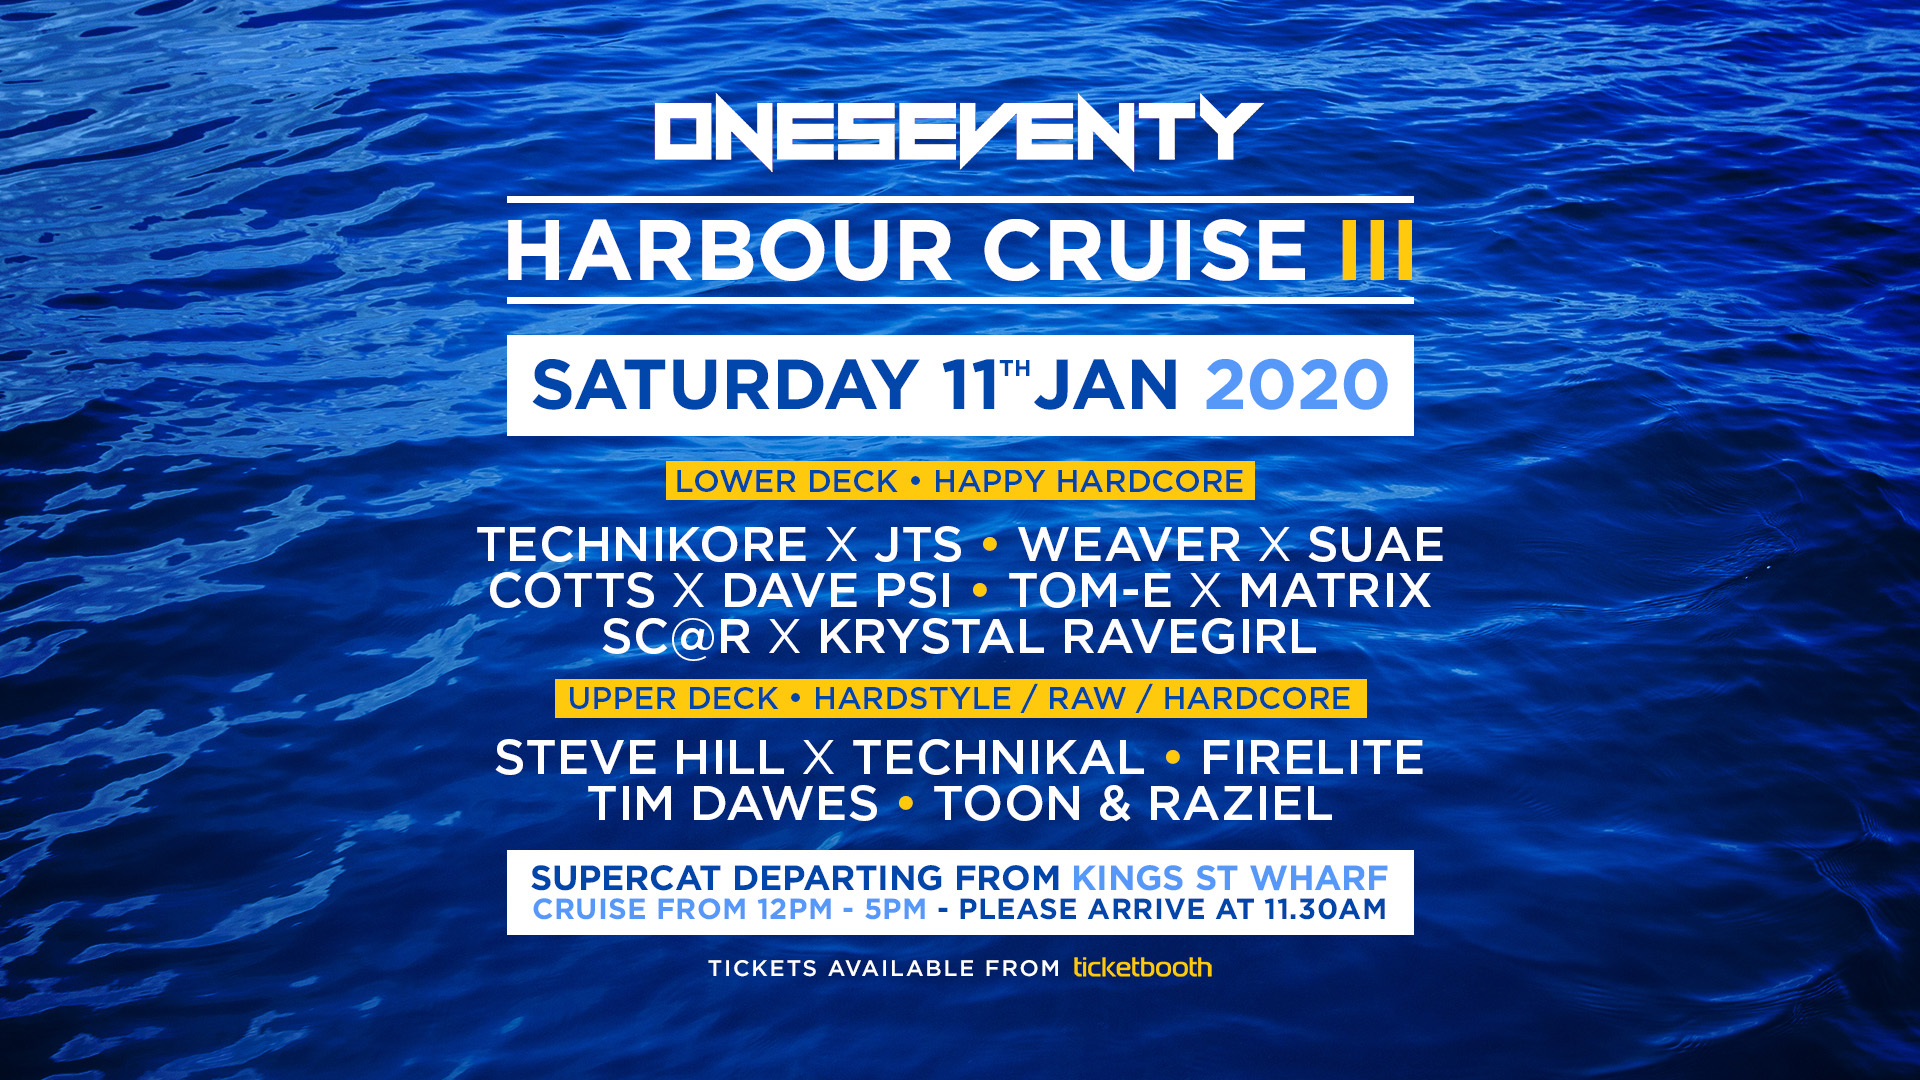 Tickets for OneSeventy: Harbour Cruise III in Sydney from Ticketbooth